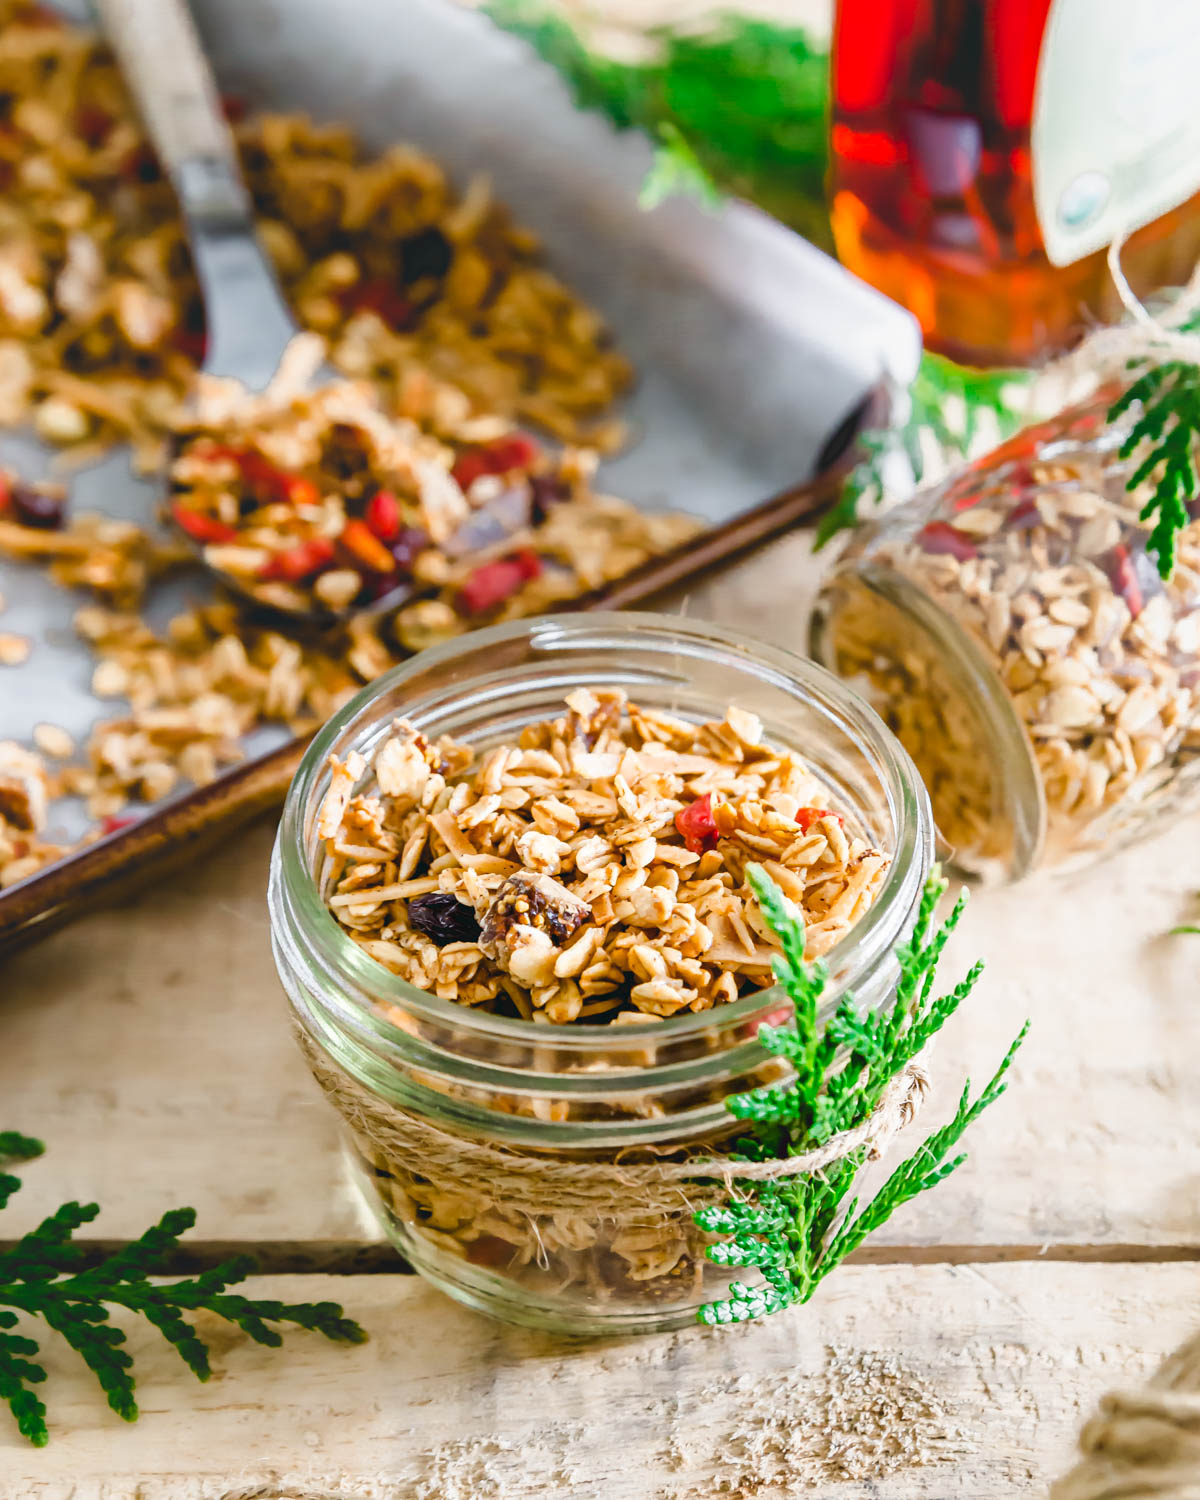 This easy homemade no nut granola is a great for sharing with friends and family as a holiday gift!